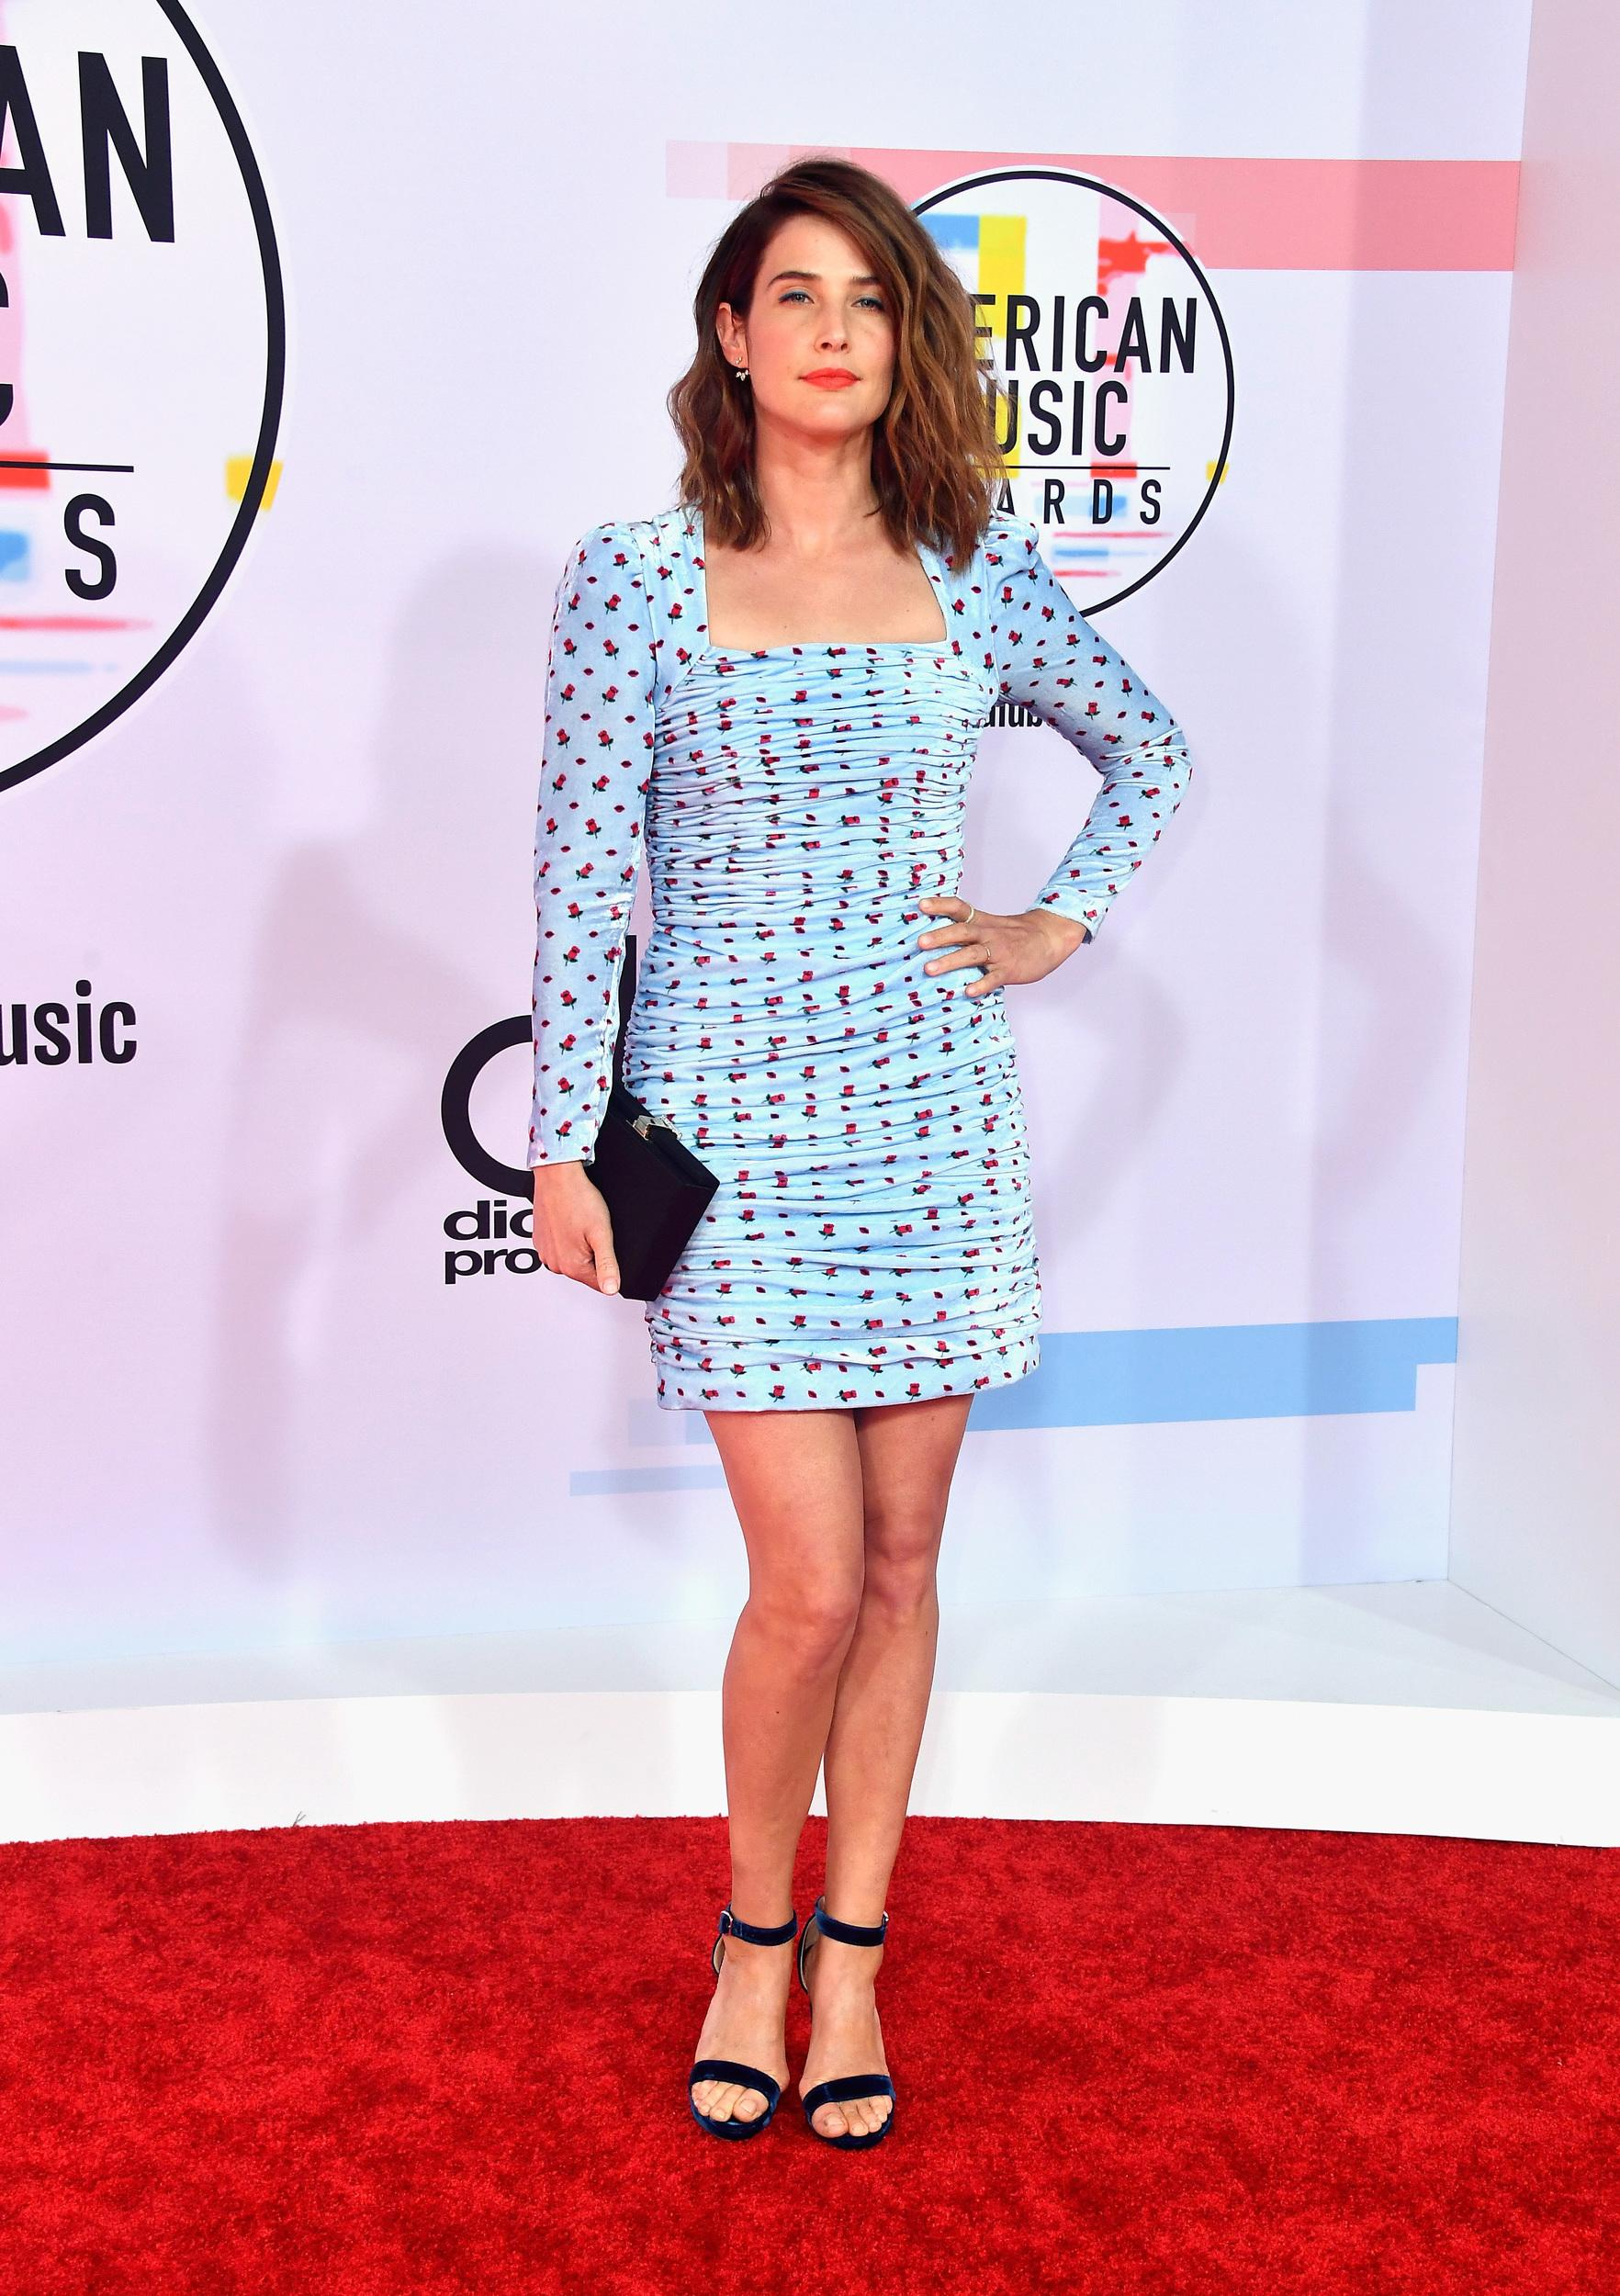 LOS ANGELES, CA - OCTOBER 09:  Cobie Smulders attends the 2018 American Music Awards at Microsoft Theater on October 9, 2018 in Los Angeles, California.  (Photo by Frazer Harrison/Getty Images)